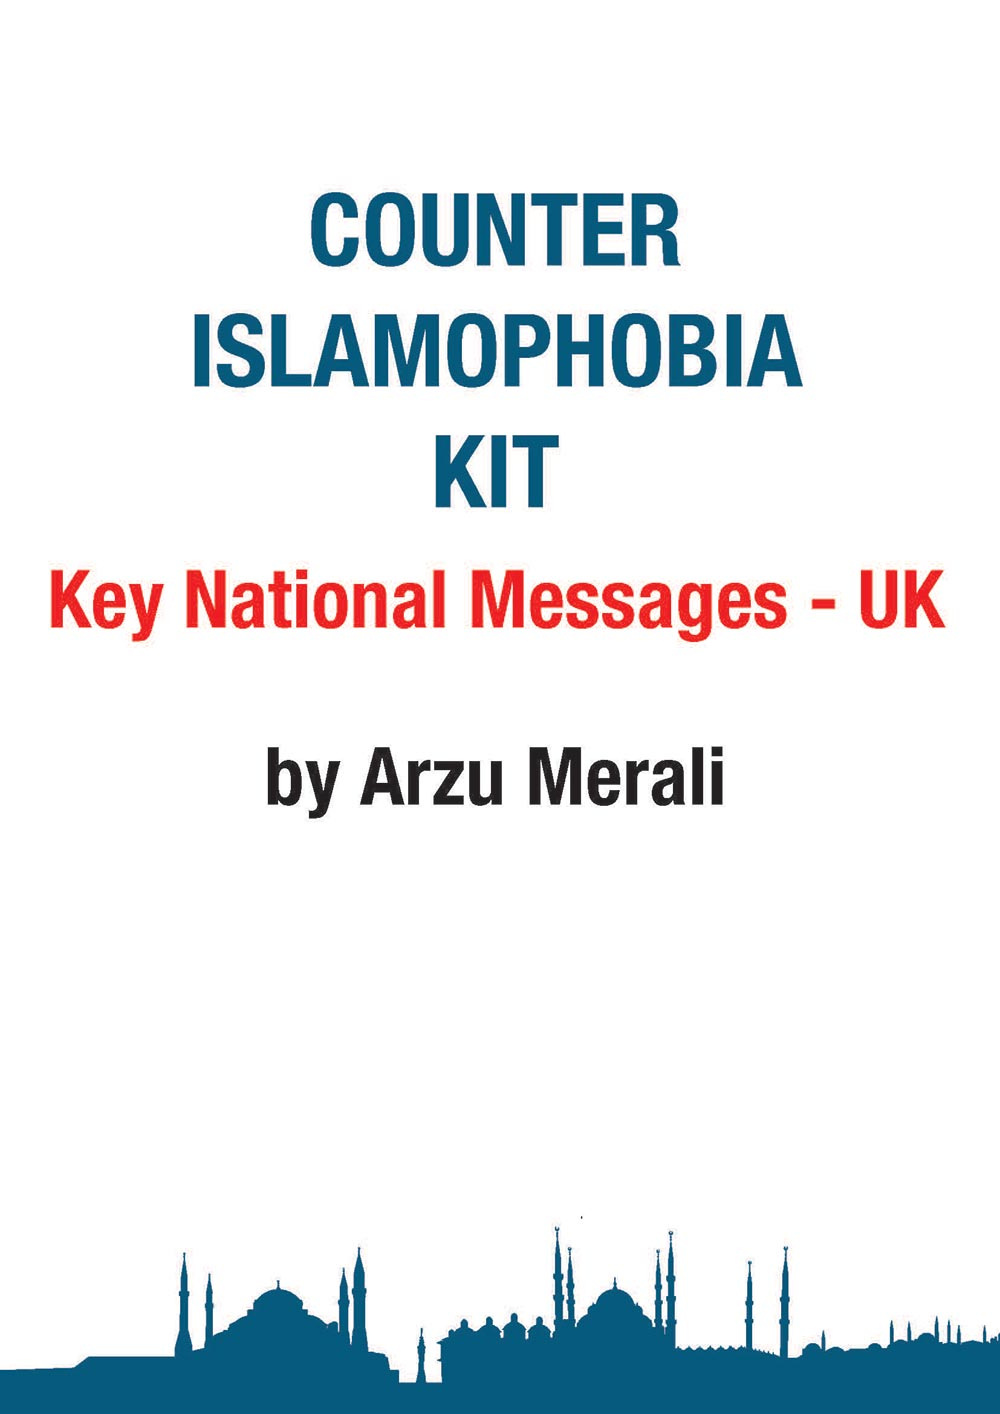 Countering Islamophobia - Key National Messages for the UK